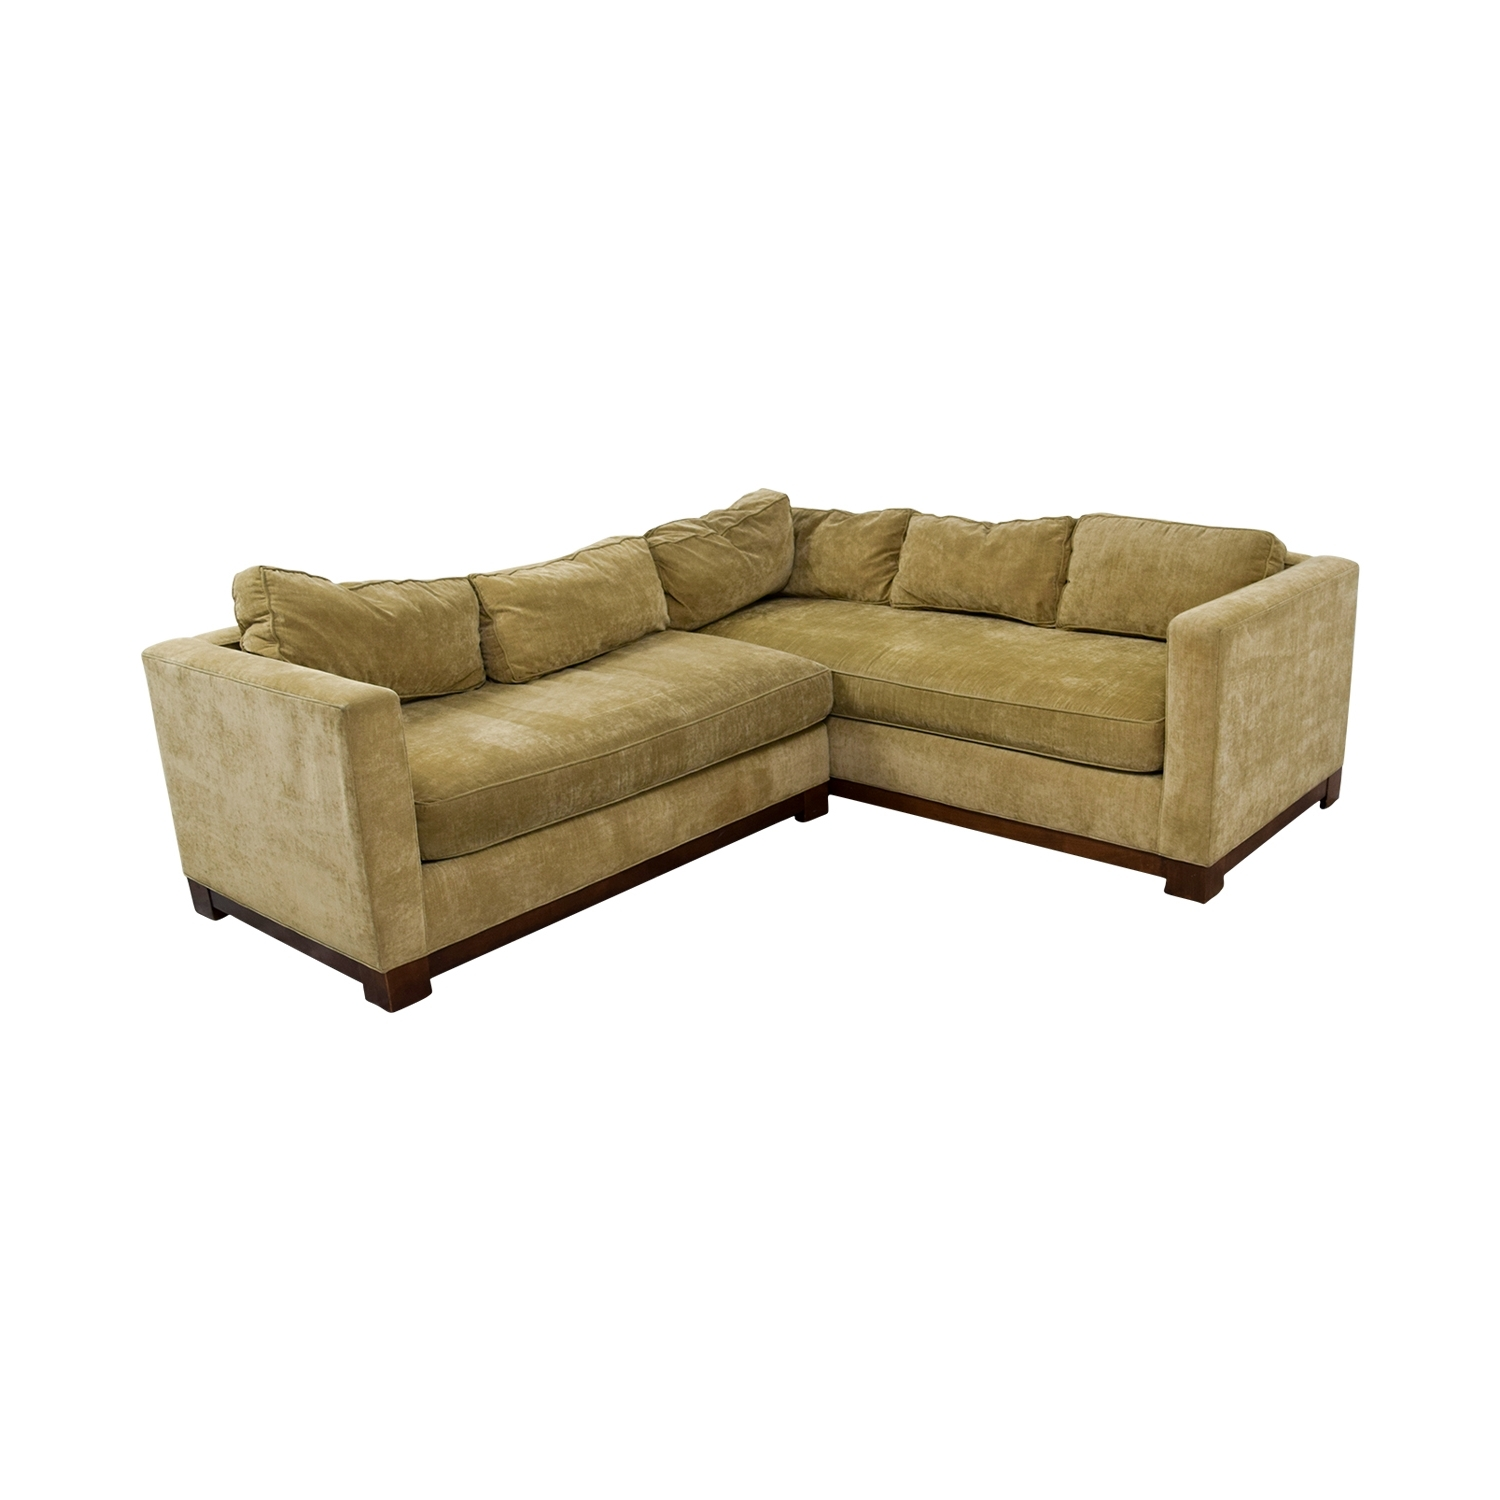 [%84% Off – Mitchell Gold + Bob Williams Mitchell Gold + Bob In Latest Gold Sectional Sofas|Gold Sectional Sofas With Preferred 84% Off – Mitchell Gold + Bob Williams Mitchell Gold + Bob|Fashionable Gold Sectional Sofas Within 84% Off – Mitchell Gold + Bob Williams Mitchell Gold + Bob|Well Known 84% Off – Mitchell Gold + Bob Williams Mitchell Gold + Bob Intended For Gold Sectional Sofas%] (View 1 of 15)